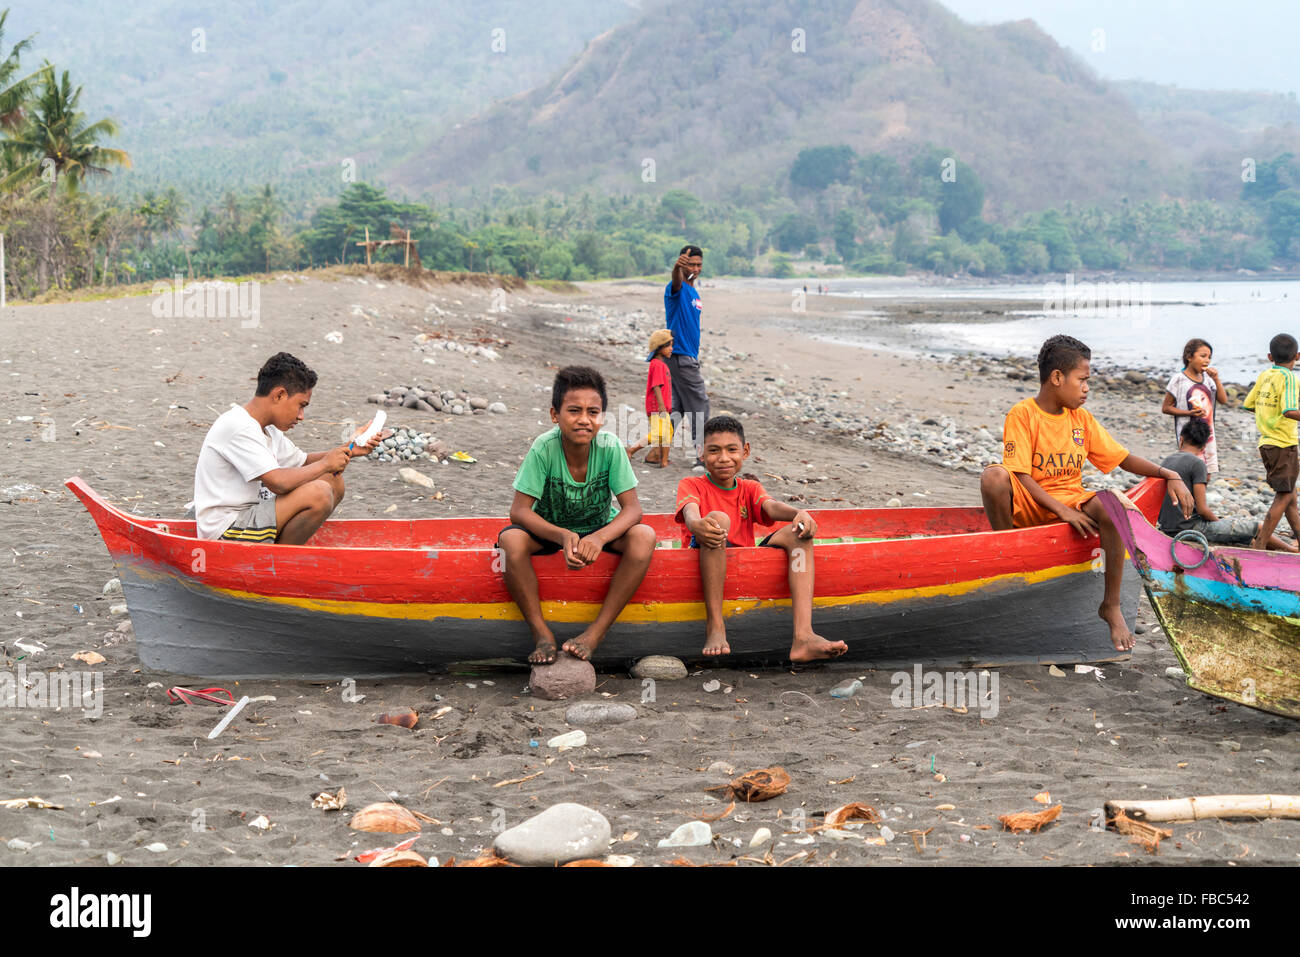 children in a fishing boat at the beach in Ende, Flores, Indonesia, Asia Stock Photo